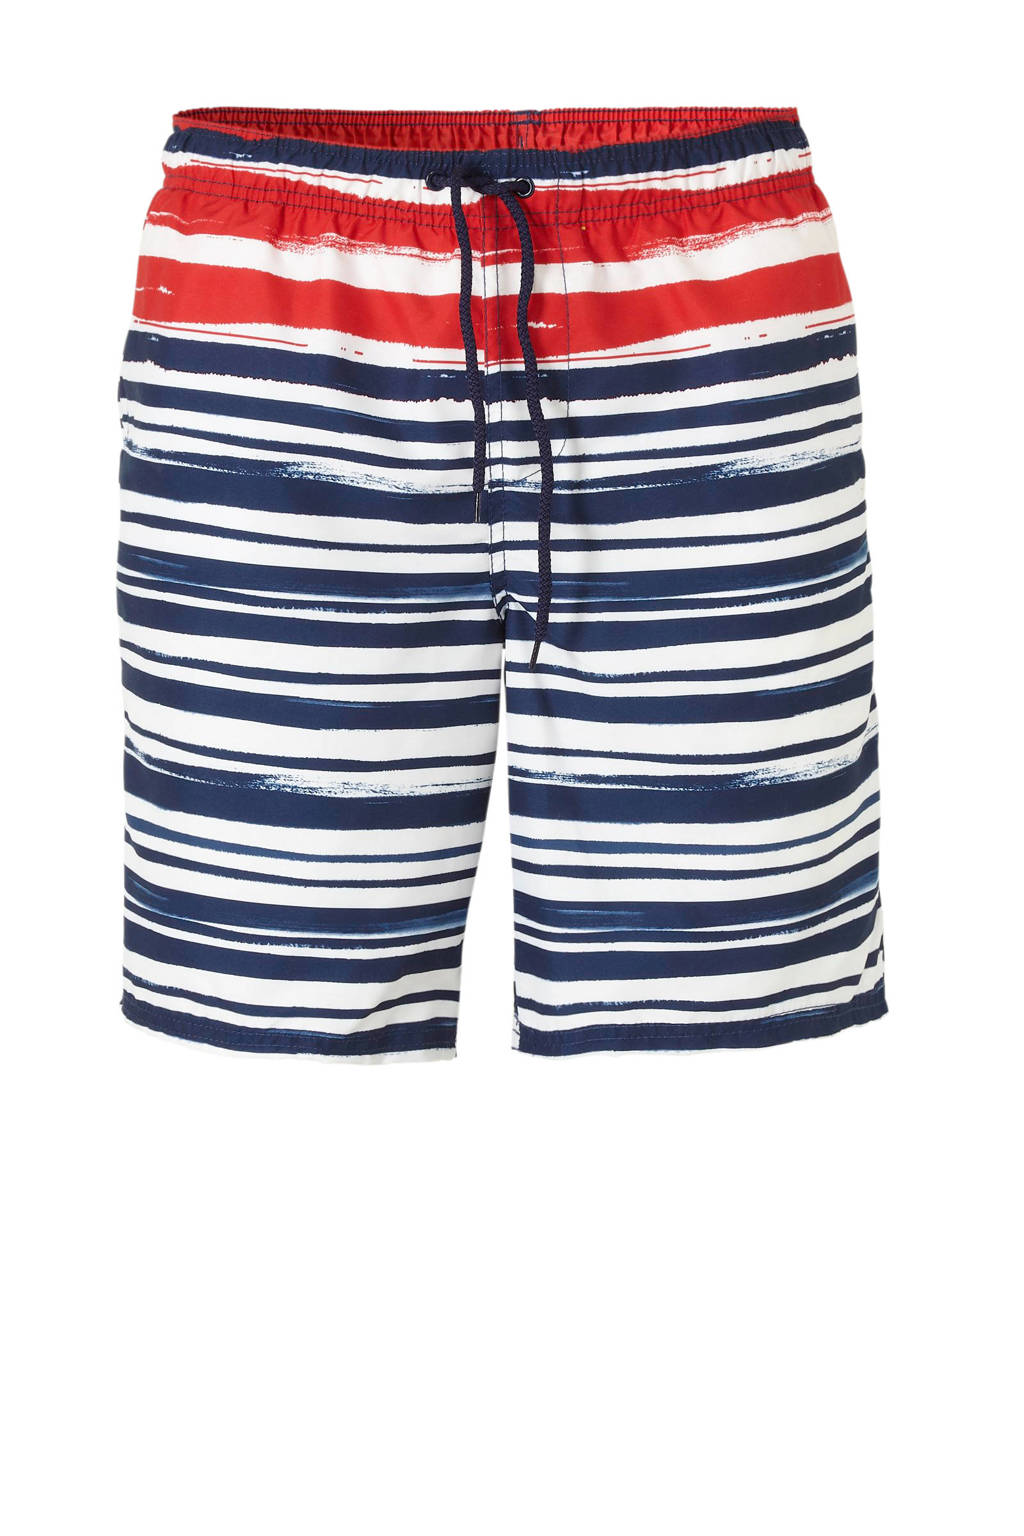 C&A zwemshort met all over print marine, Marine/rood/wit